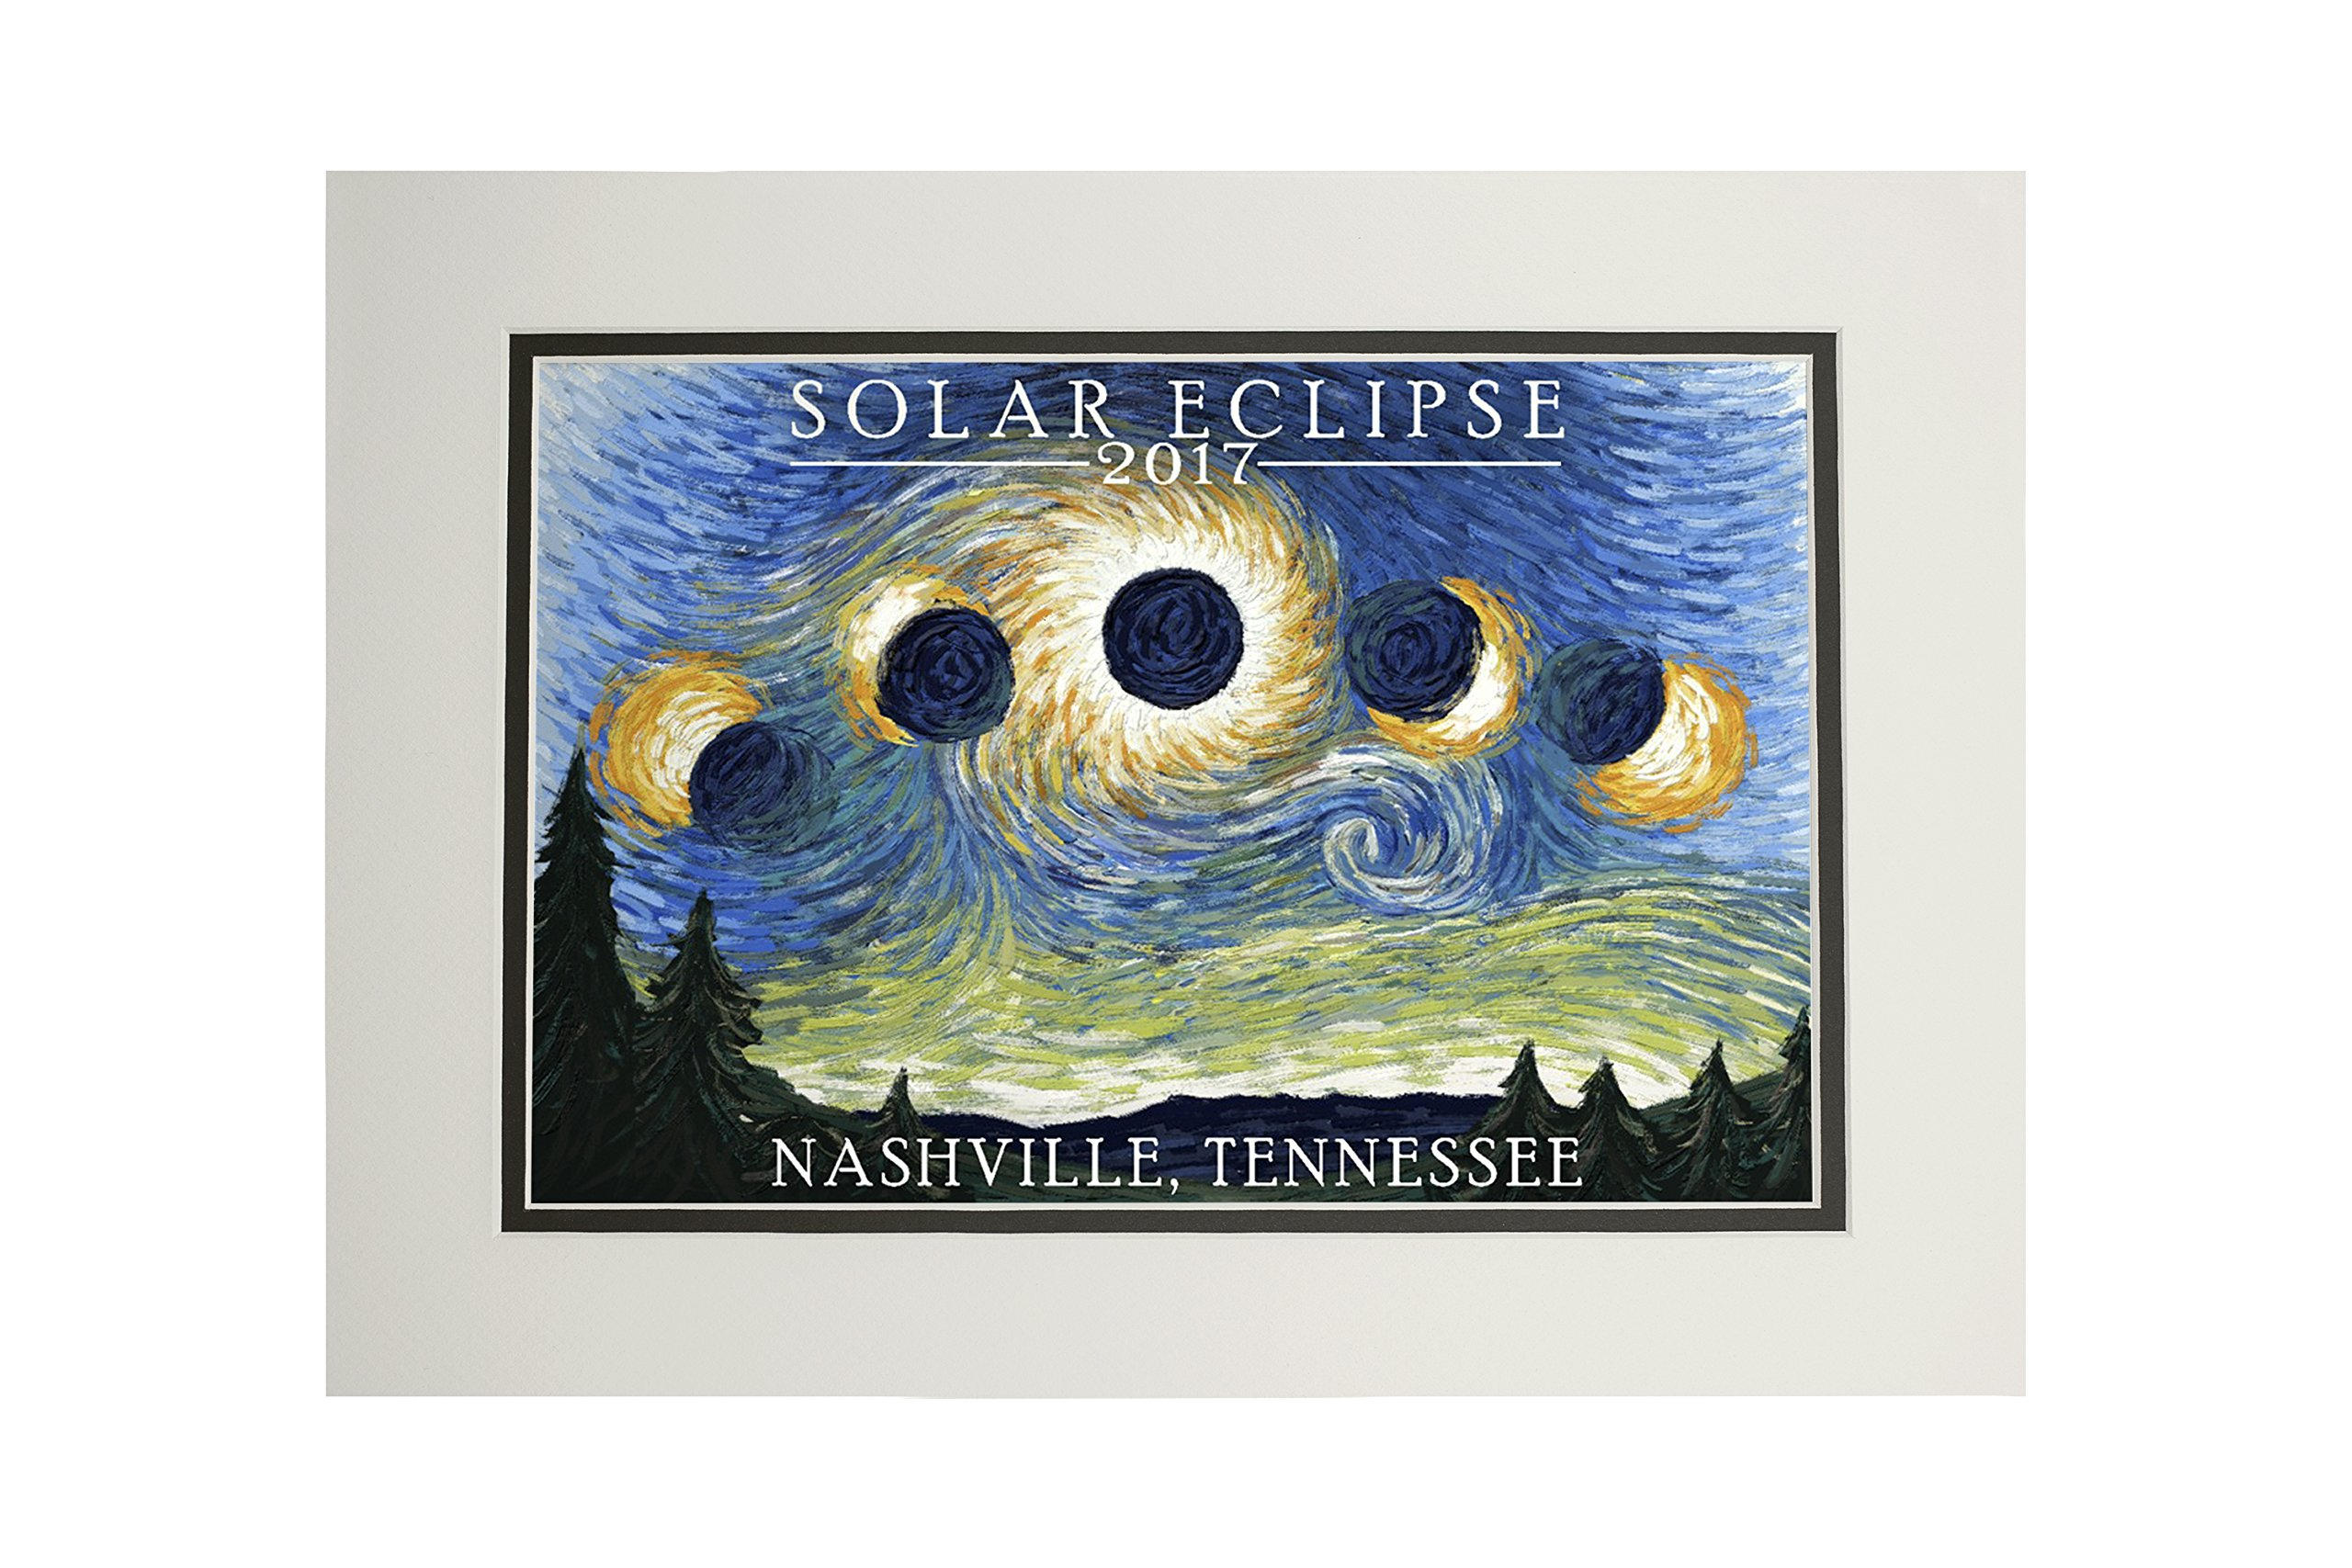 Nashville, Tennessee - Solar Eclipse 2017 - Starry Night (11x14 Double-Matted Art Print, Wall Decor Ready to Frame)